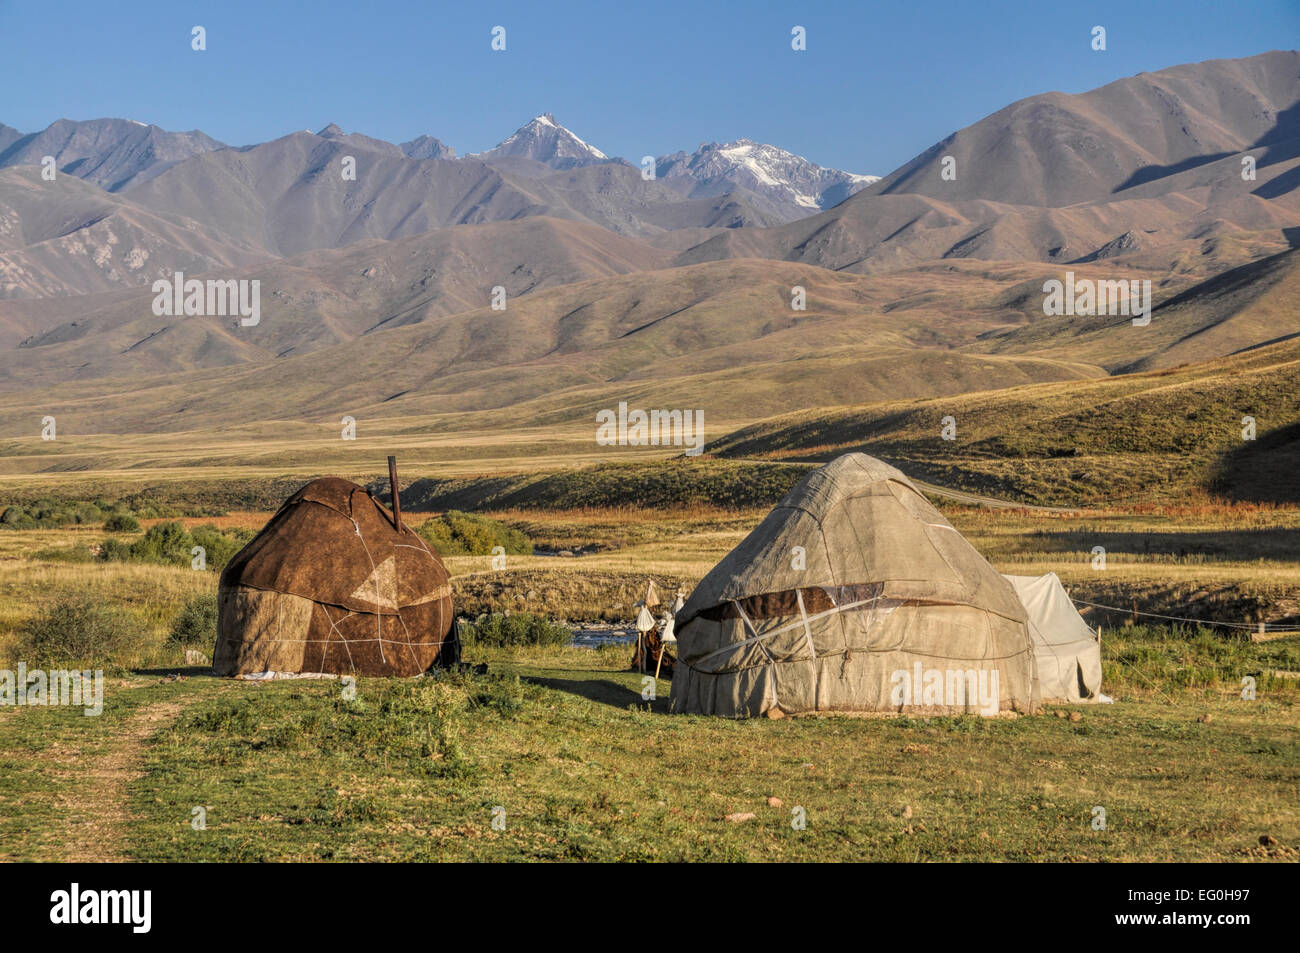 Nomadic settlements with yurts on green grasslands in Kyrgyzstan - Stock Image